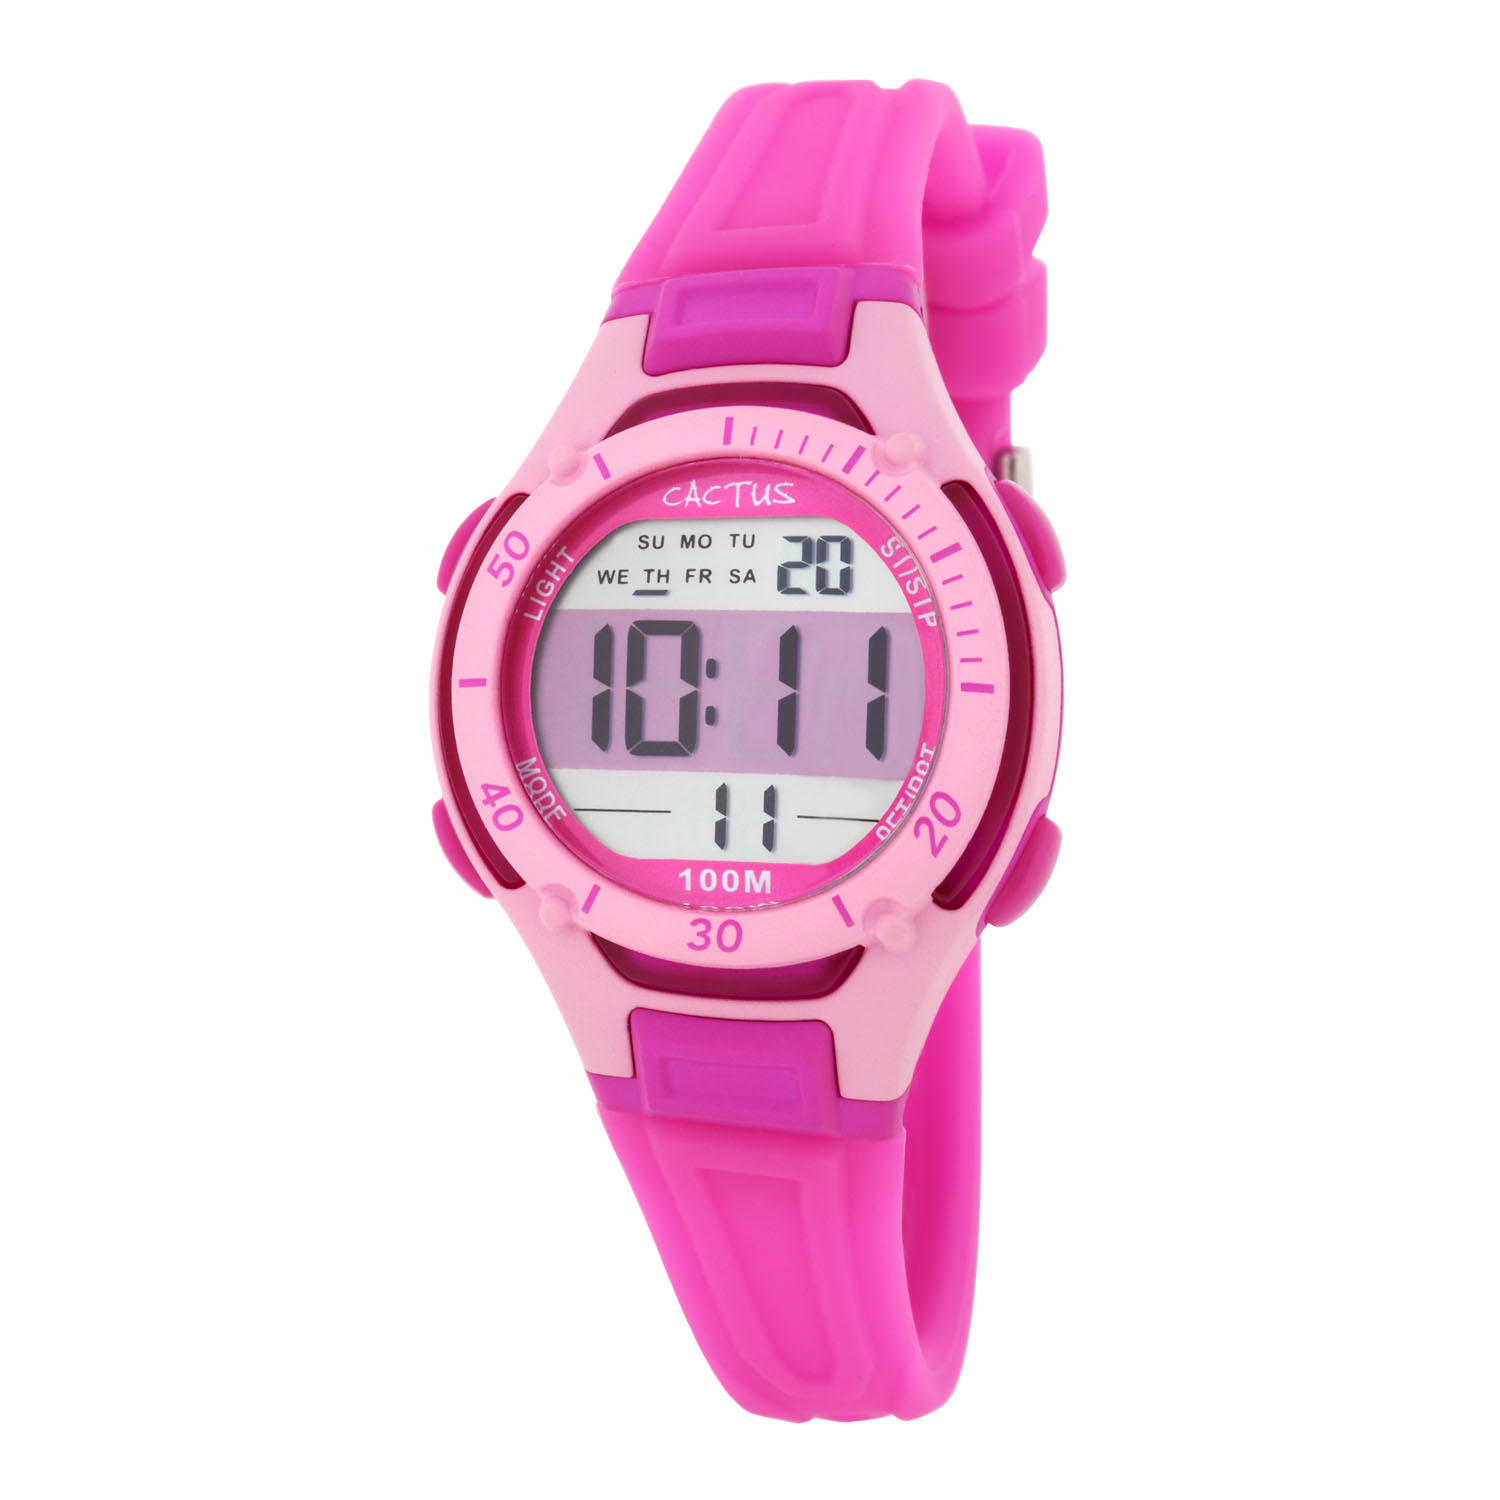 Cactus Wave Tech Digital Kids Watch